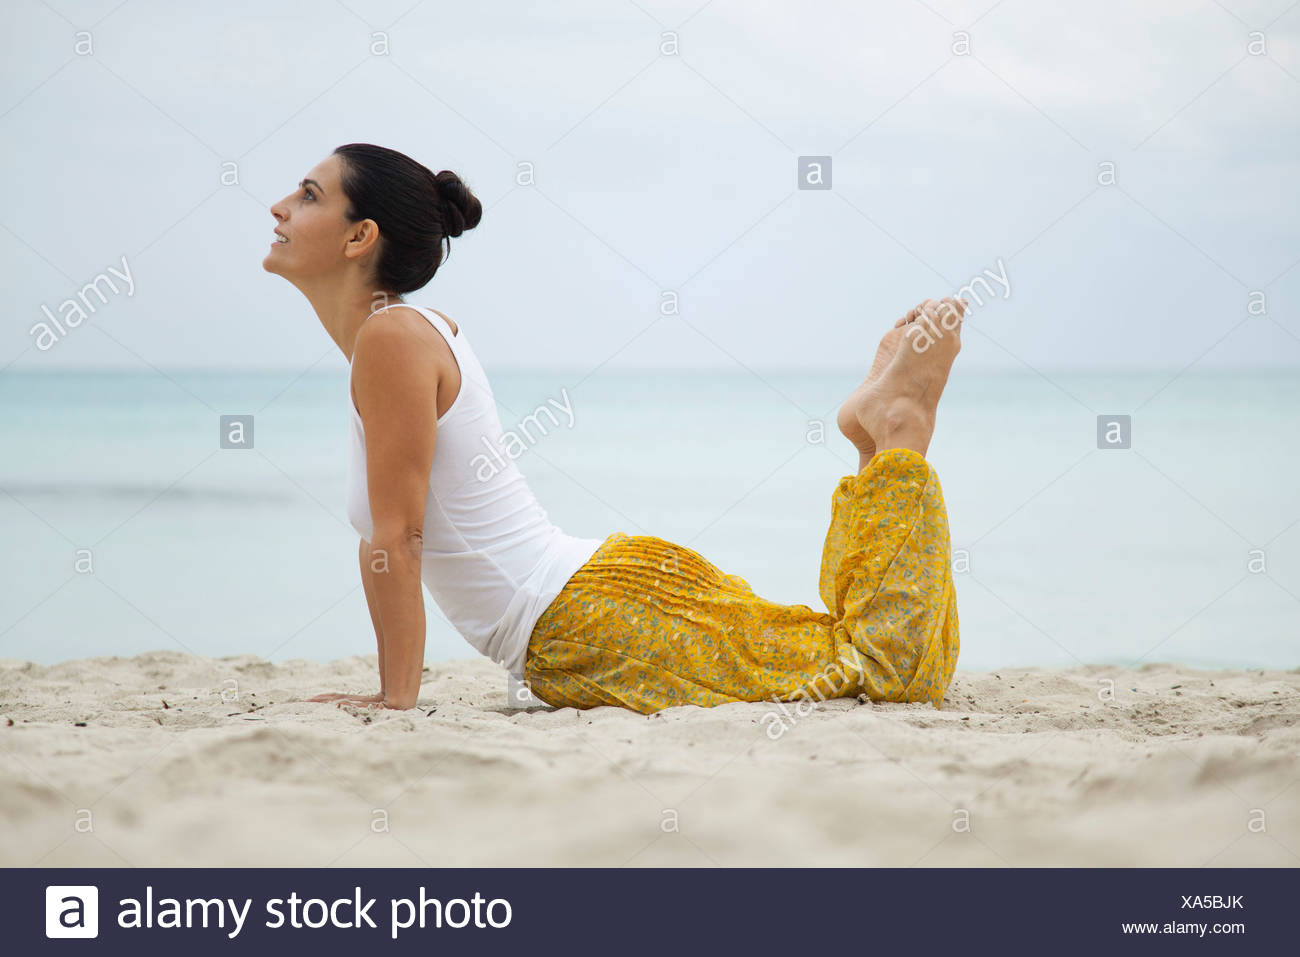 Mature woman practicing yoga on beach, side view - Stock Image